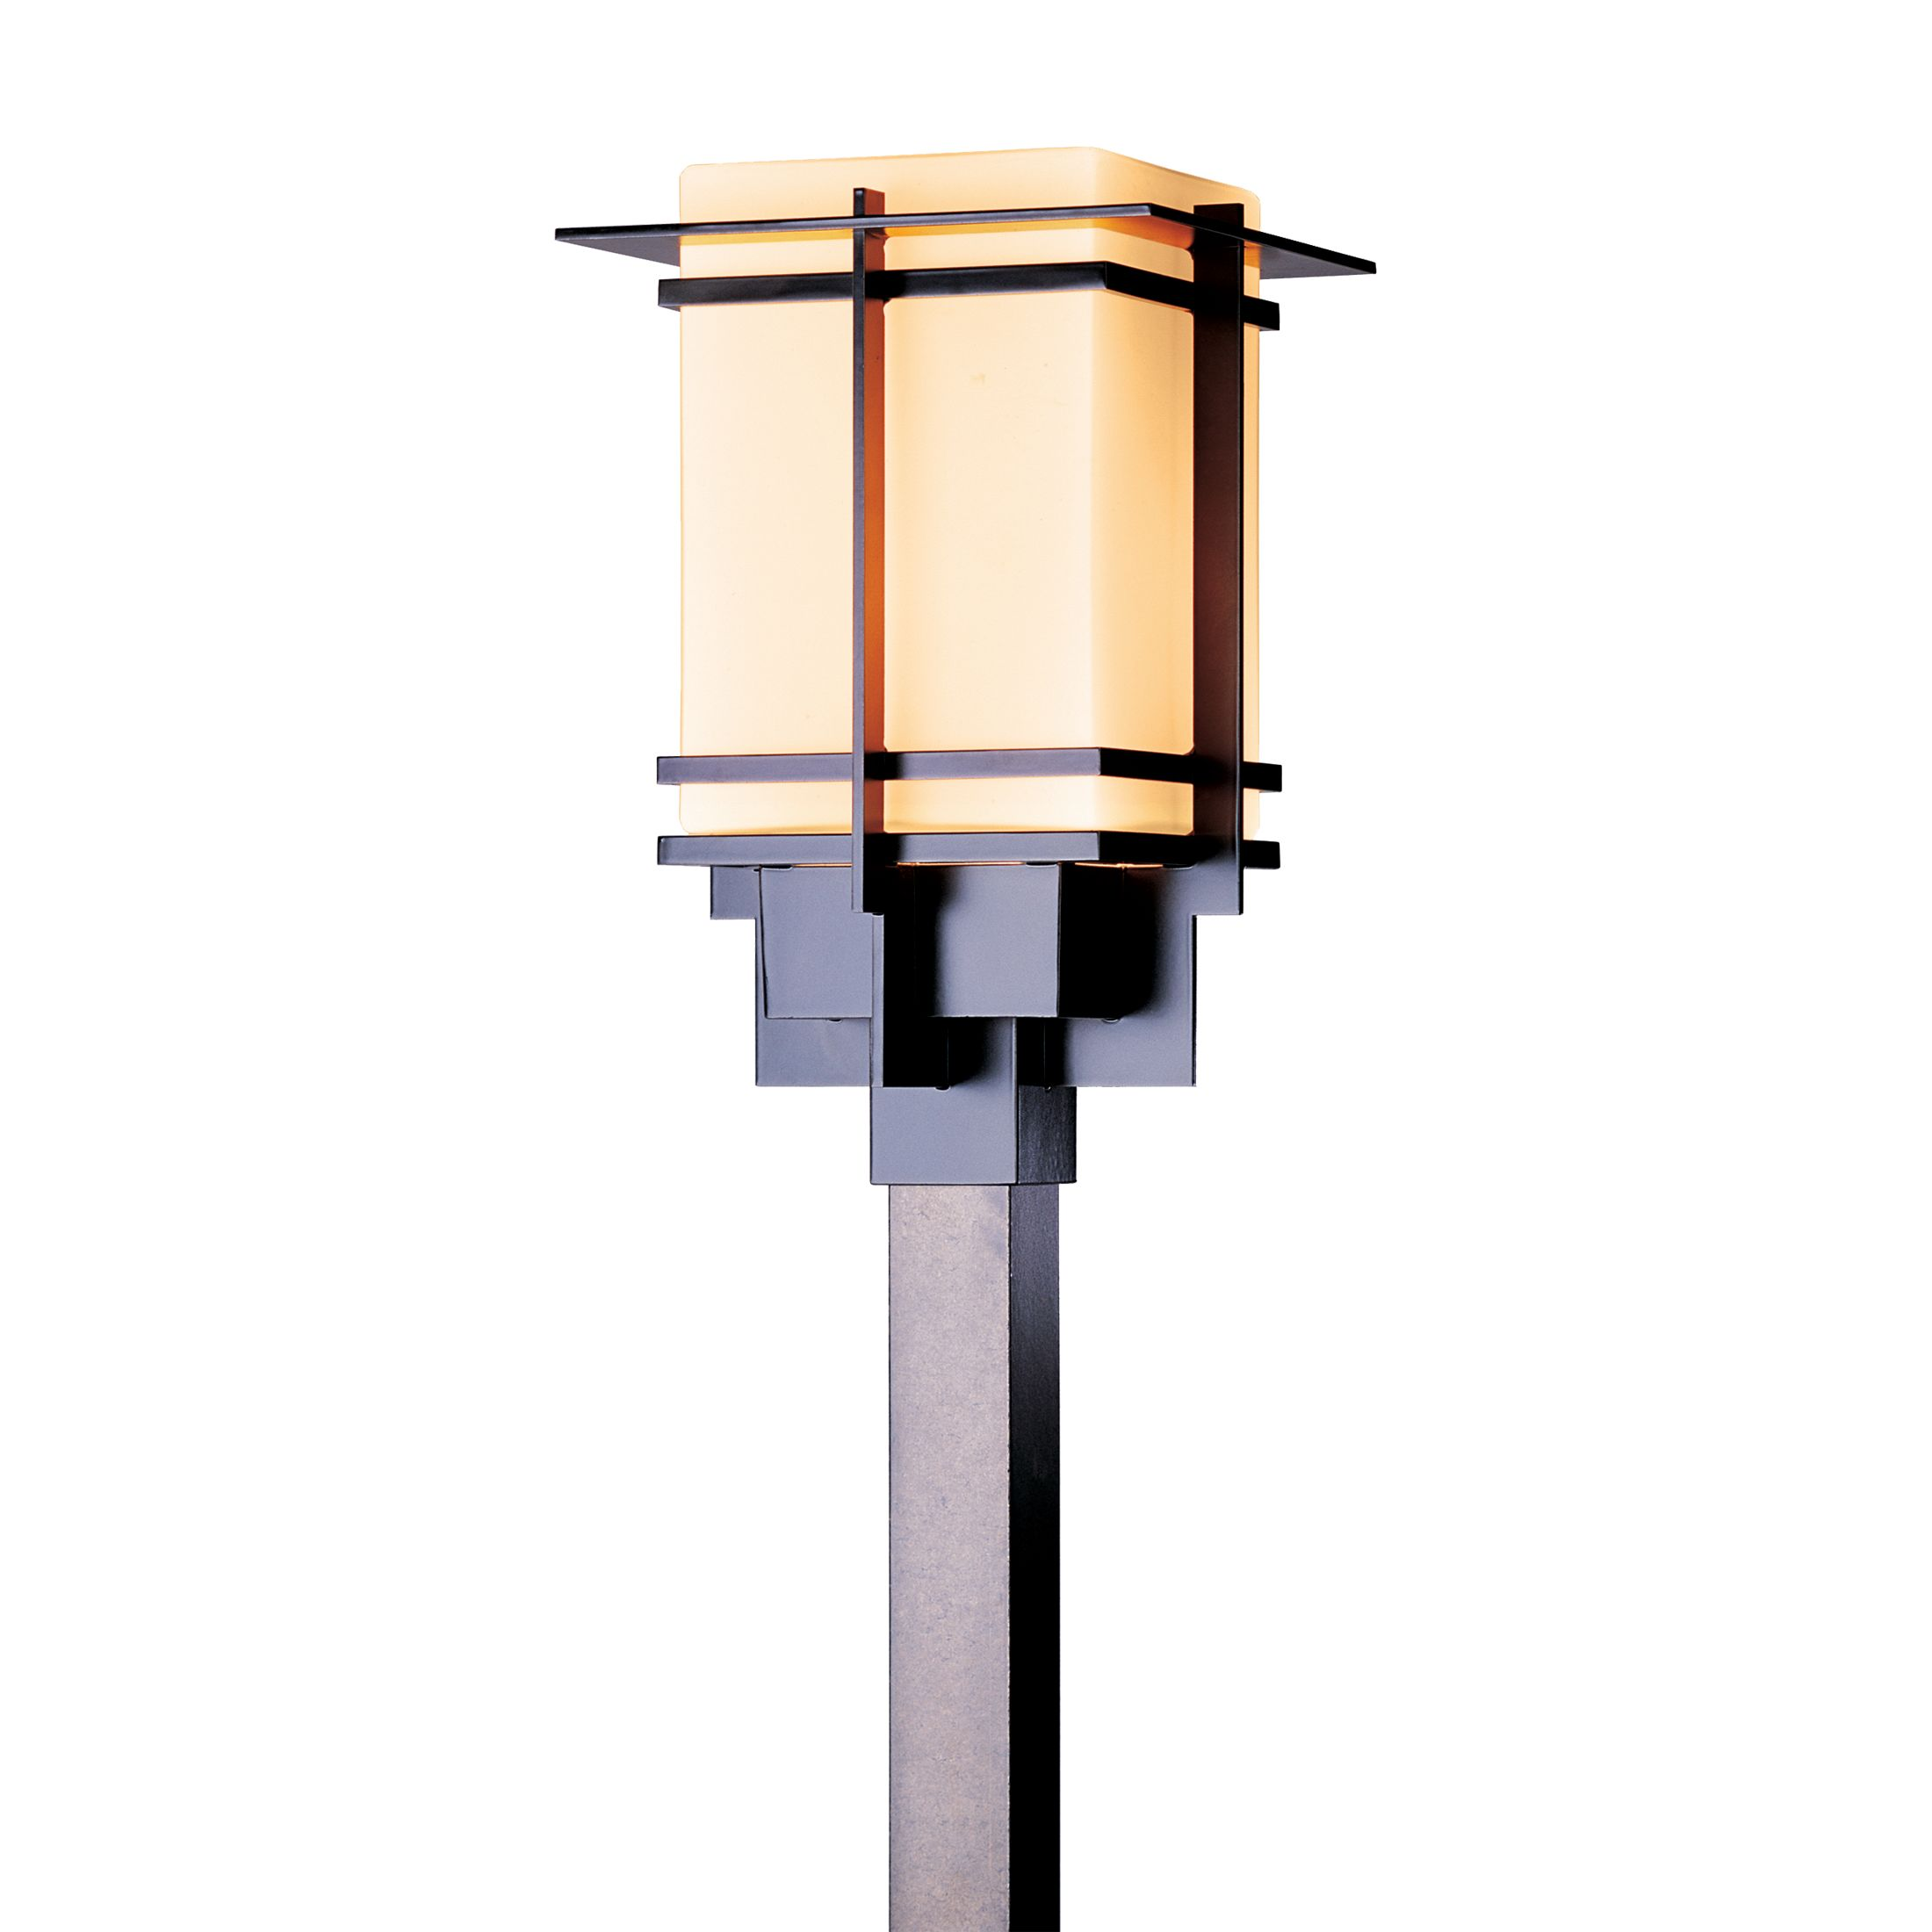 Thumbnail for Tourou Large Outdoor Post Light